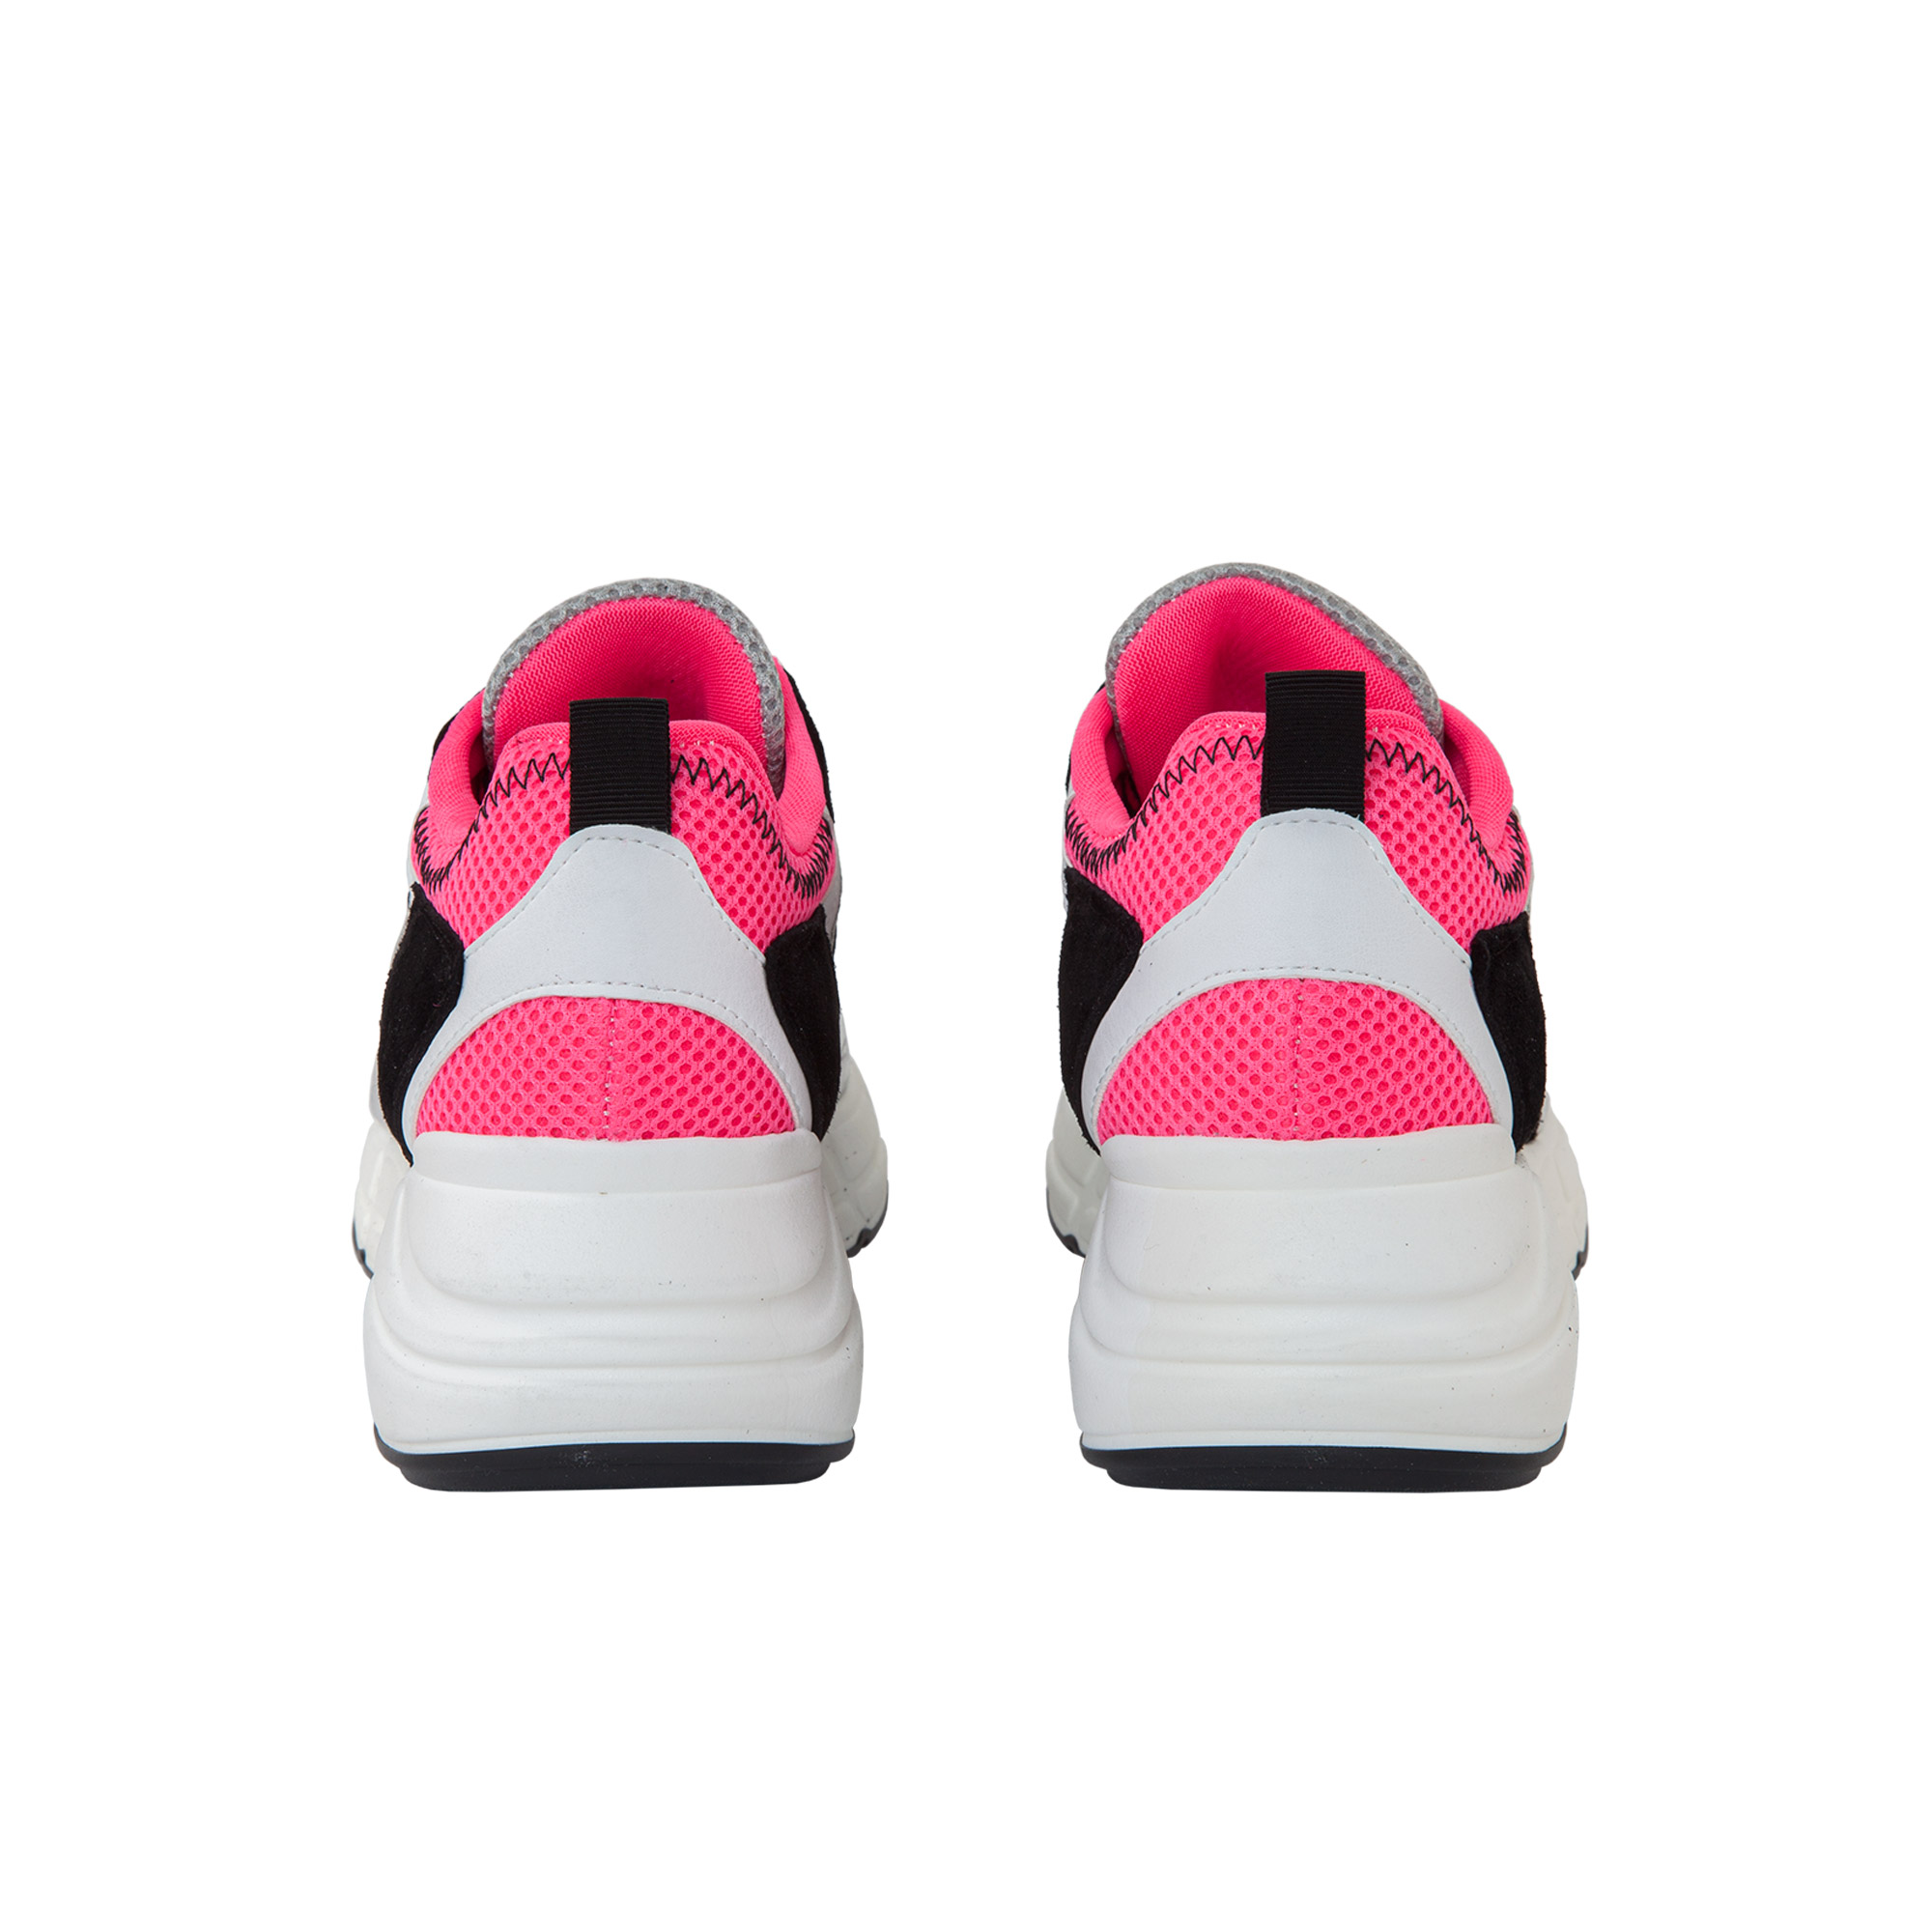 SNEAKERS - GBDA1332 - GAELLE PARIS